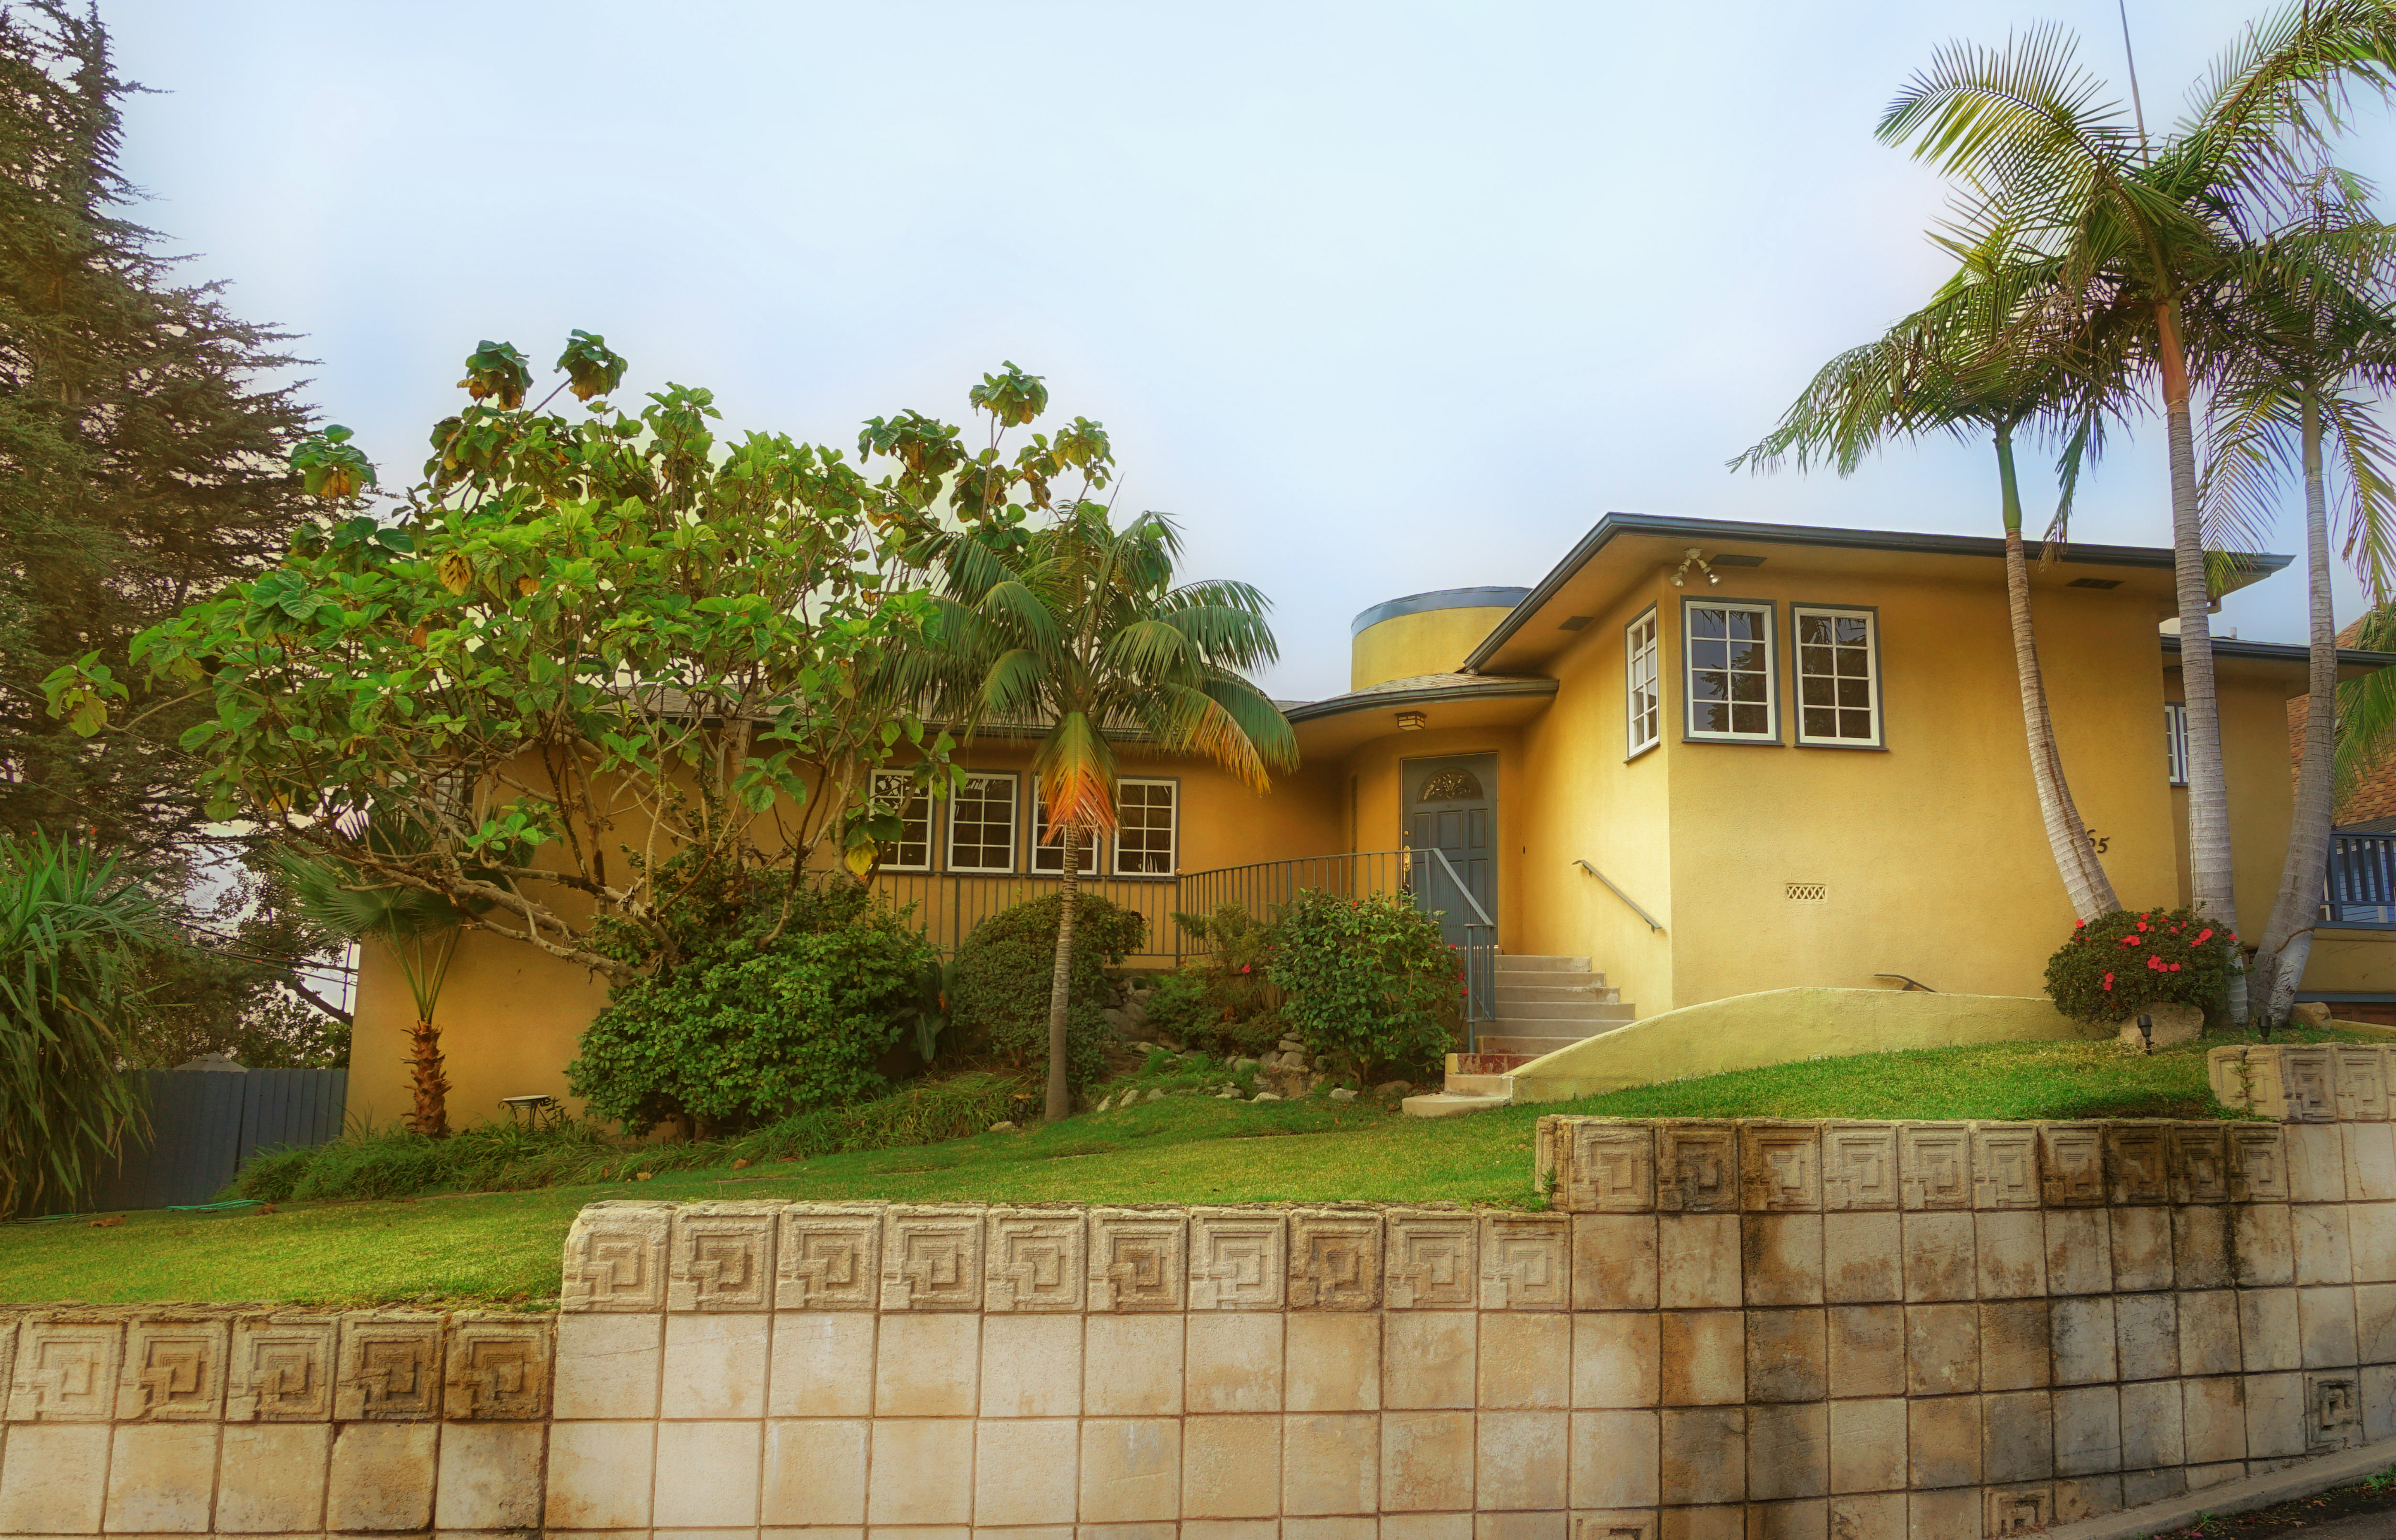 for rent in los angeles curbed la